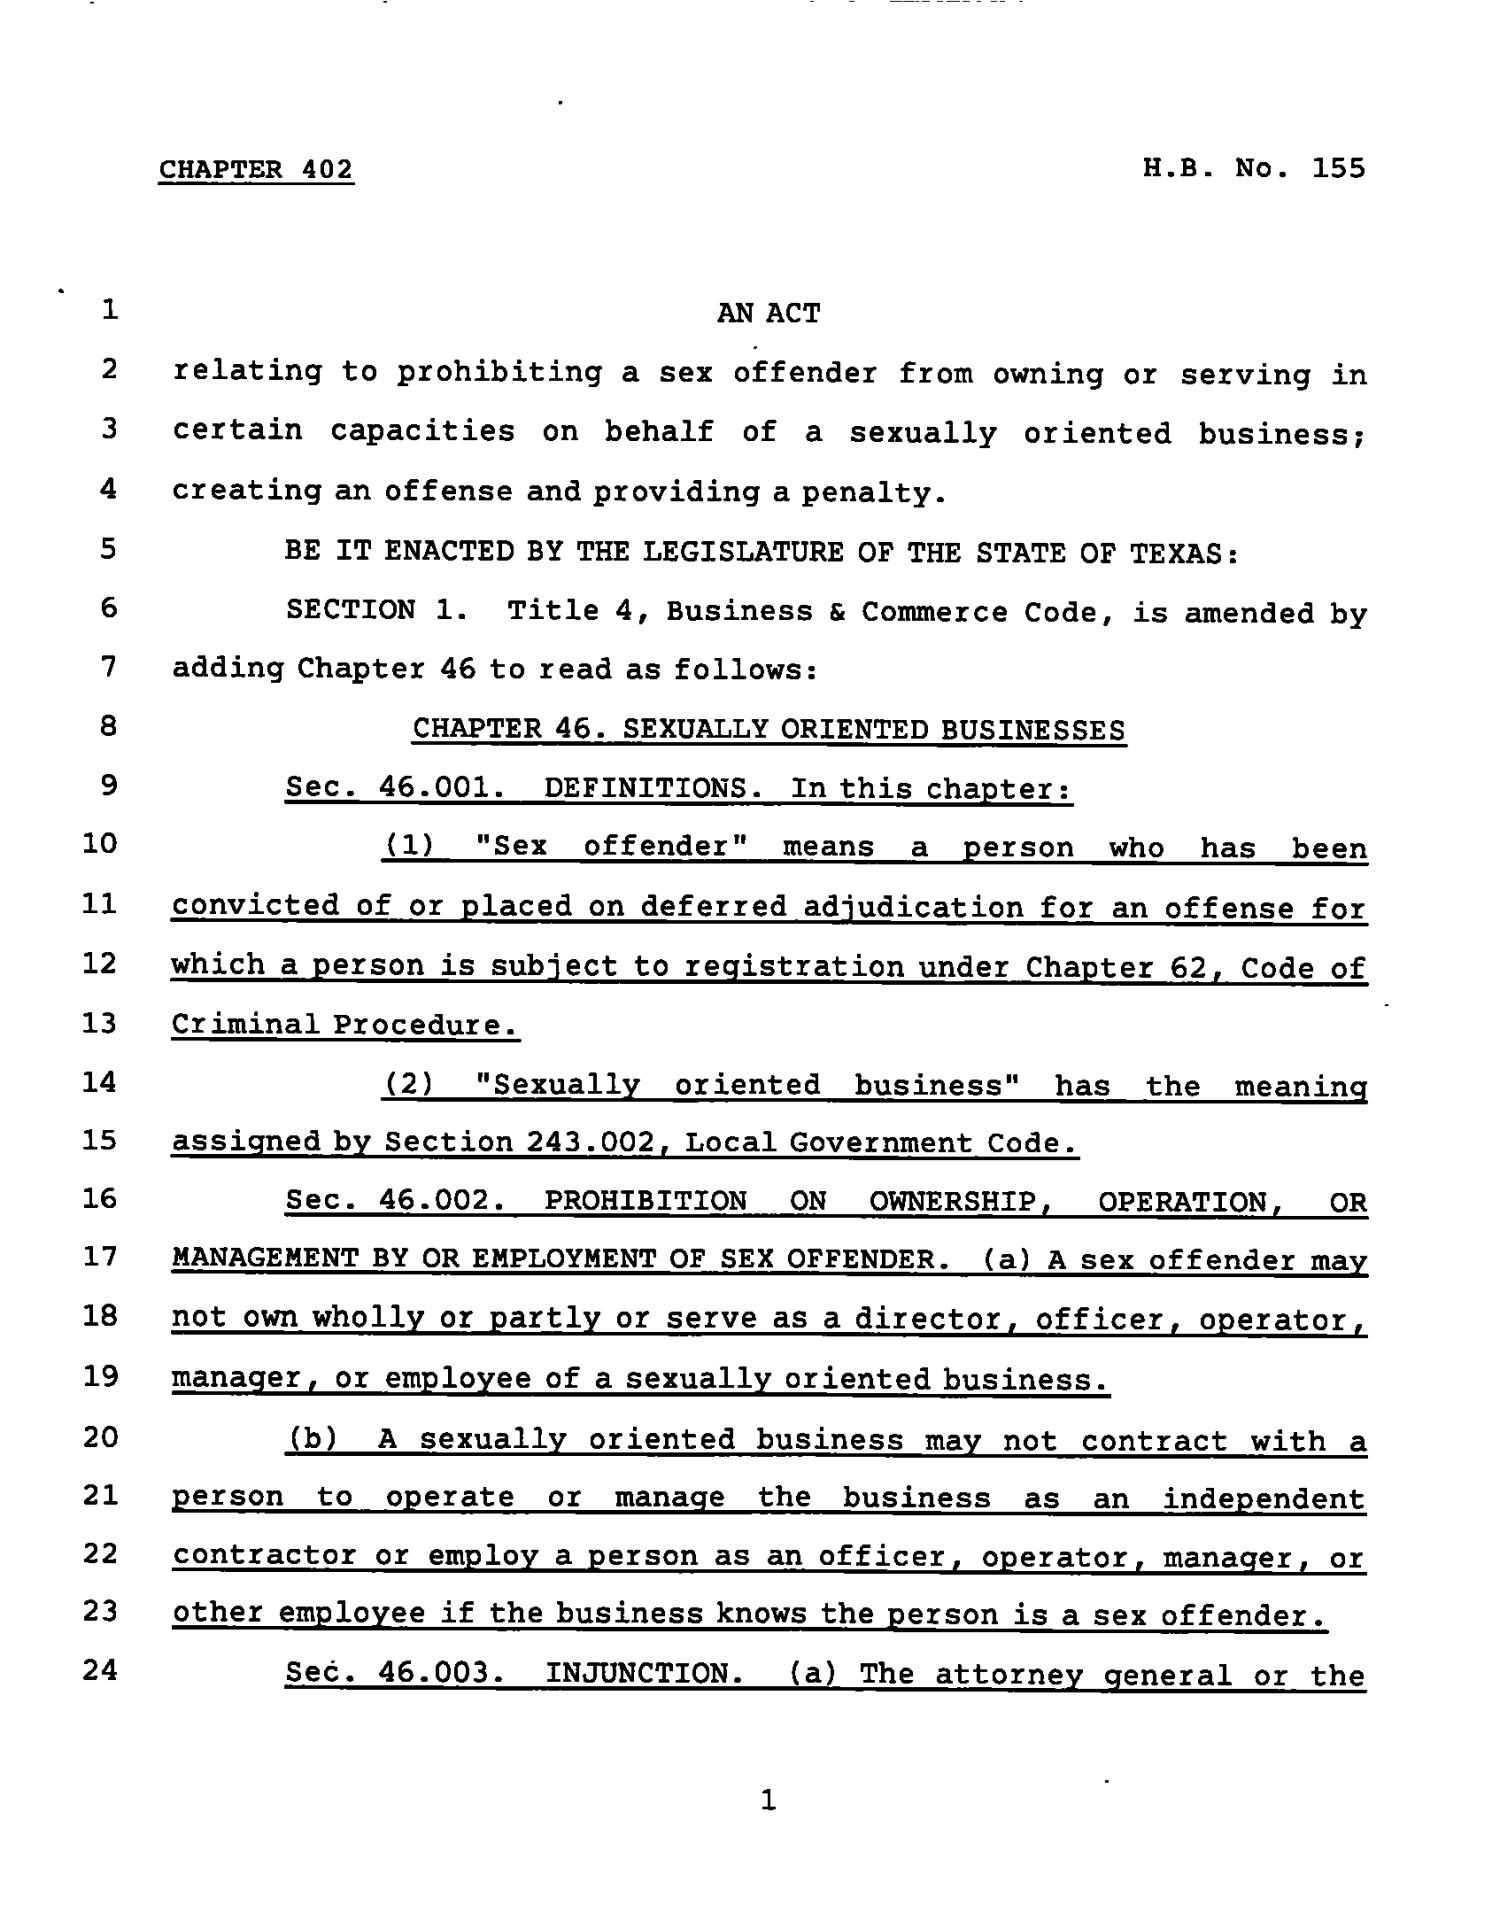 78th Texas Legislature, Regular Session, House Bill 155, Chapter 402                                                                                                      [Sequence #]: 1 of 3